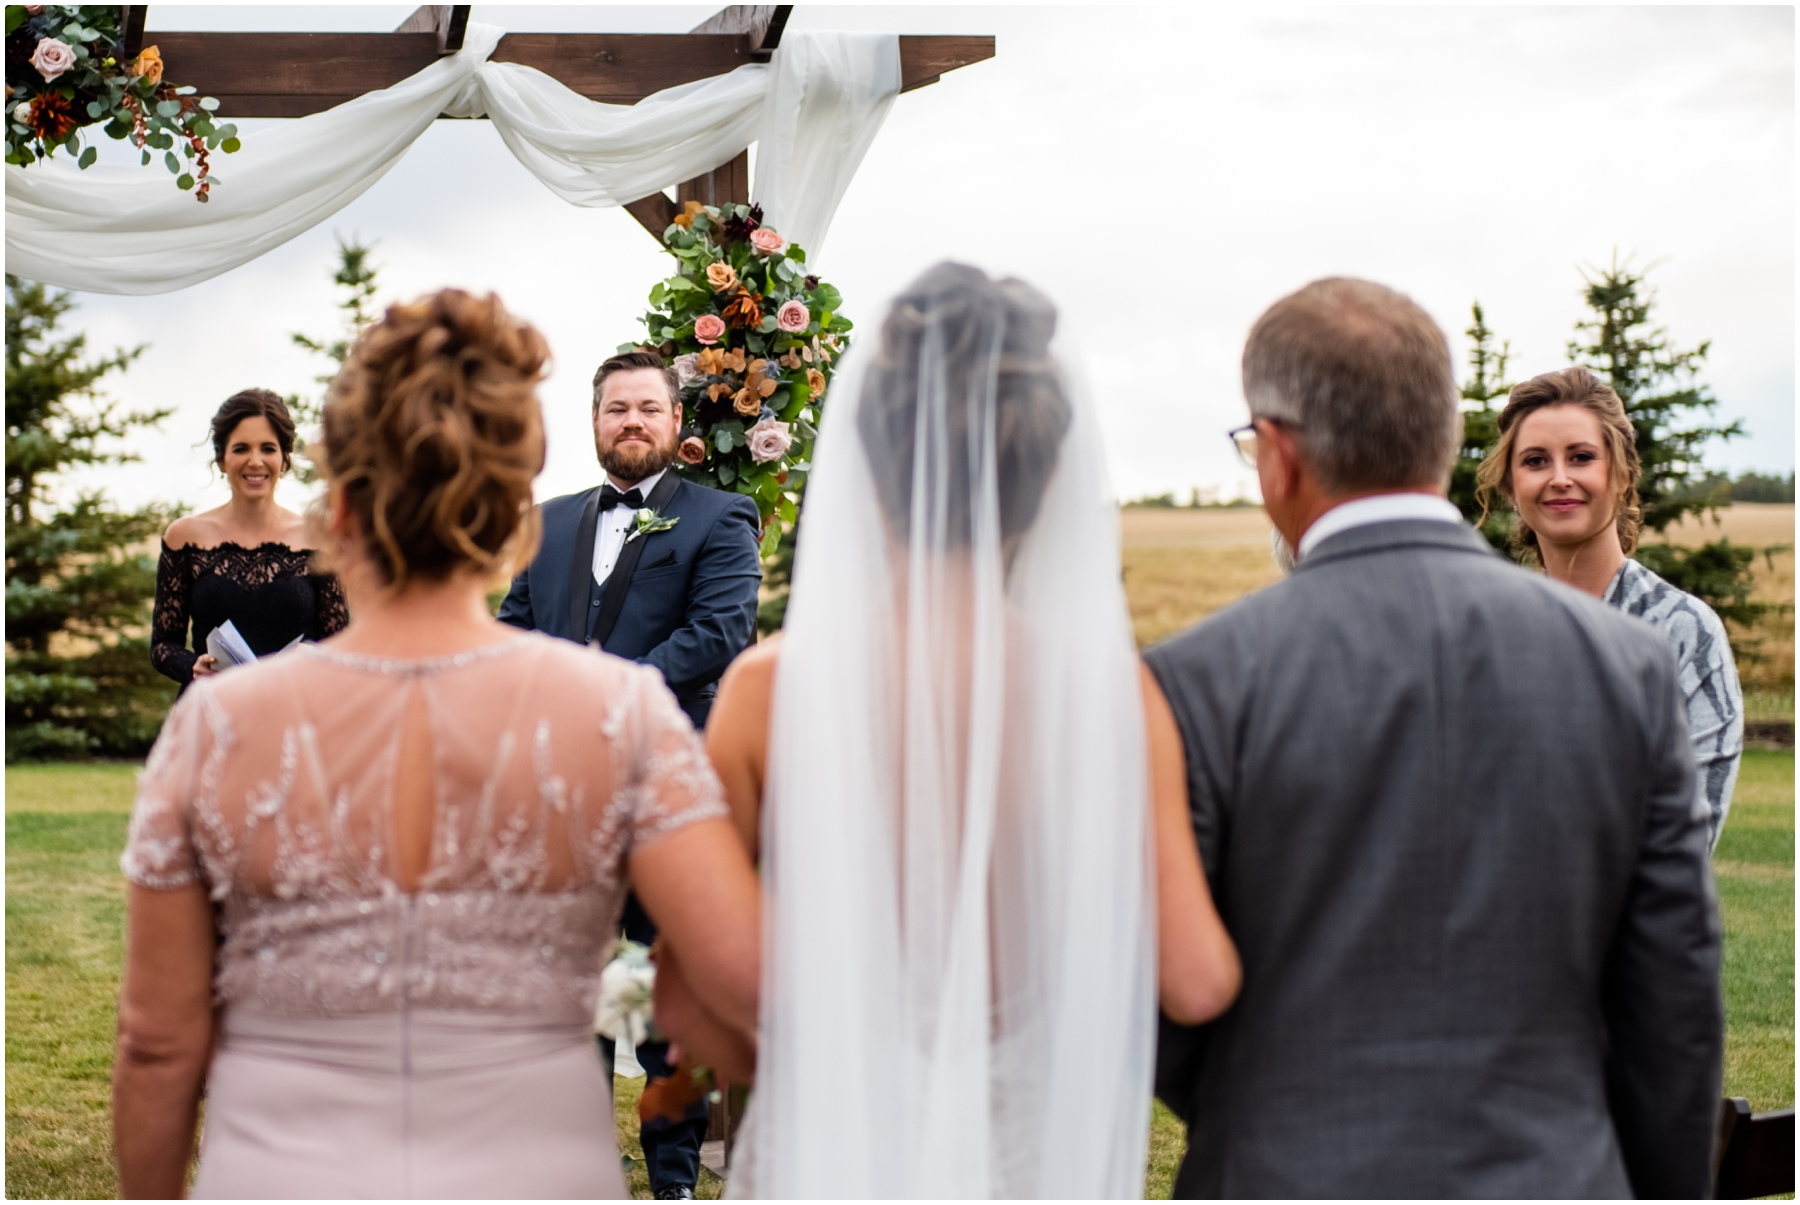 Sweet Haven Barn Wedding Ceremony Photographers - Fall Outdoor Wedding